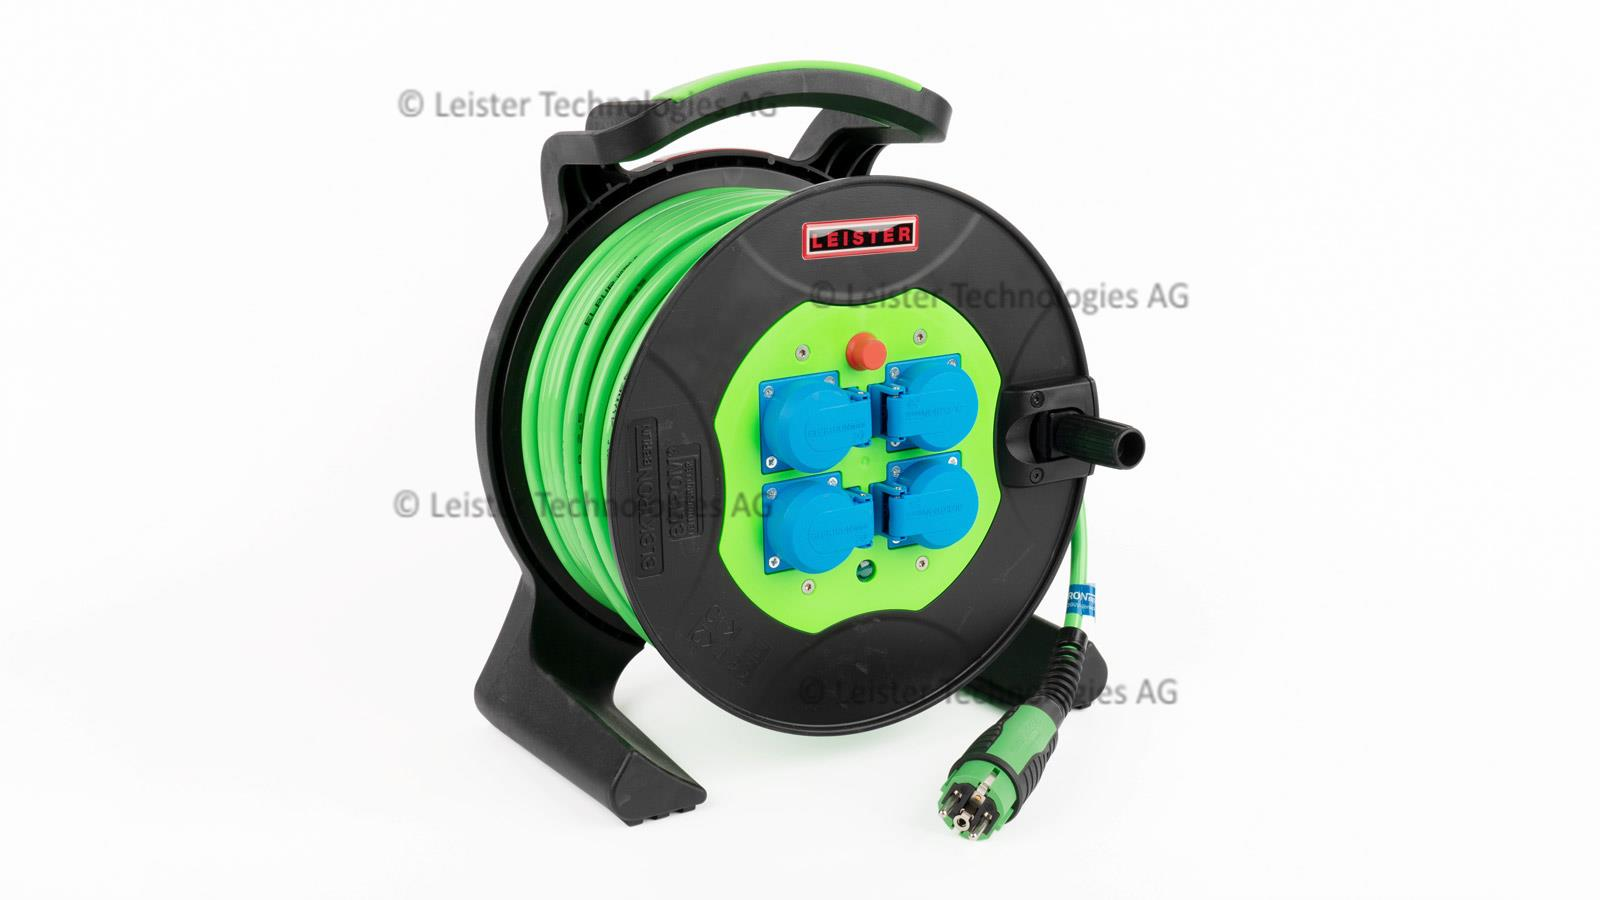 https://leister.azureedge.net/-/media/images/leister_internet/335-ltag-pw-ph-accessories/leister-accessories/allgemeines-zubehoer/164_048_cable_reel_45_4-eu.jpg?revision=0c20cc6f-5b89-4620-89af-3a7a8dbc4f3f